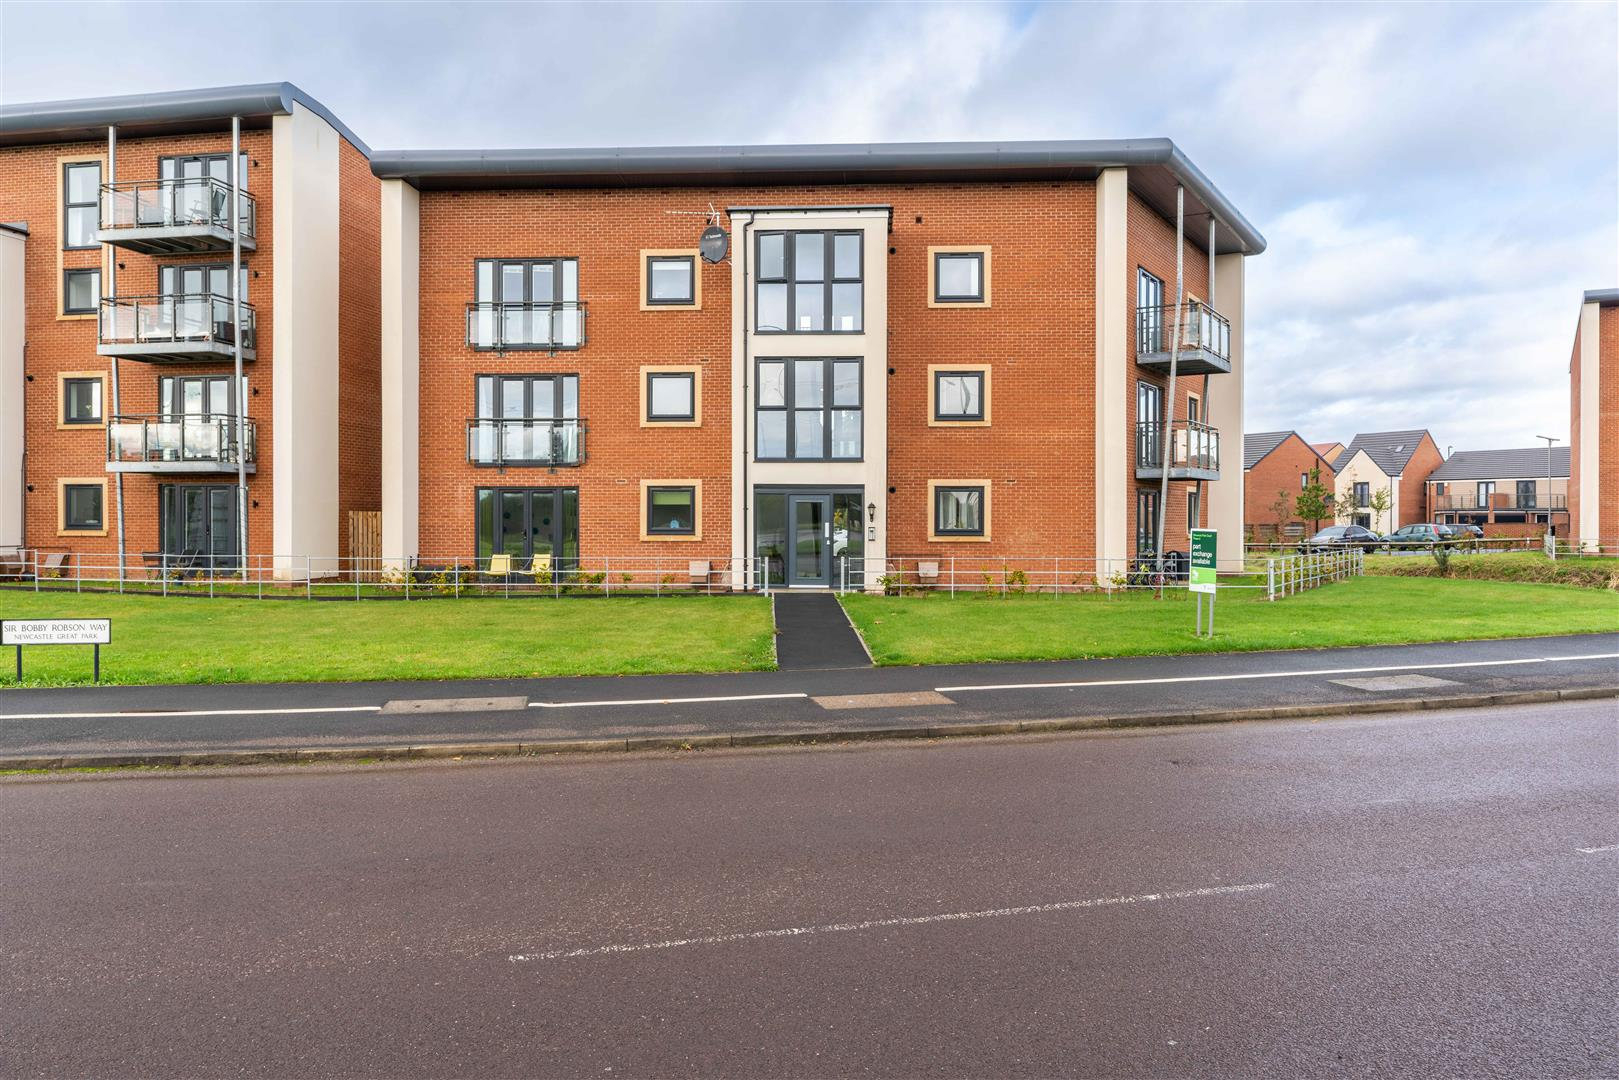 2 bed apartment for sale in Willowbay Drive, Newcastle Upon Tyne, NE13